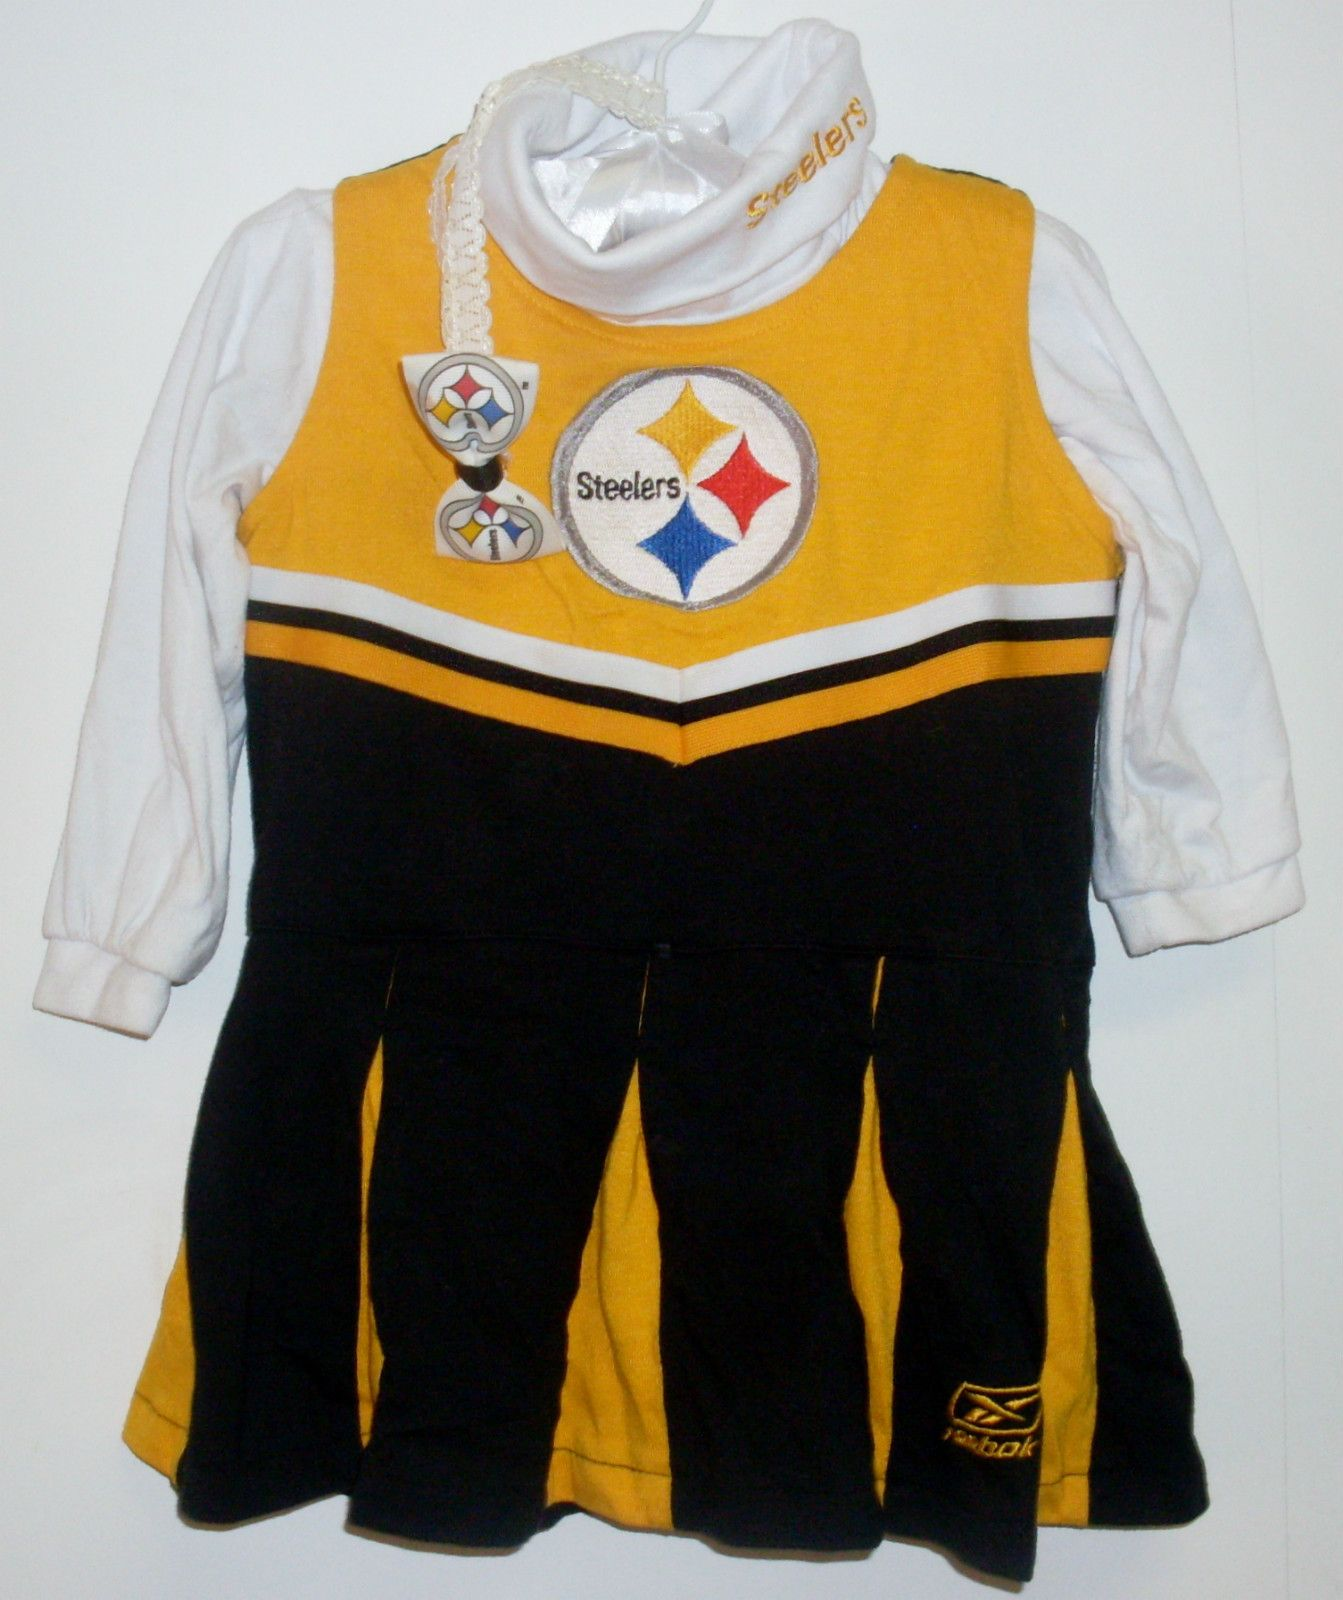 Pittsburgh Steelers NFL Football Cheerleader Outfit made by Reebok. Baby  Girls size 18 Months. Im pretty sure I had one of these and so will my  Daughter. 04949bd01